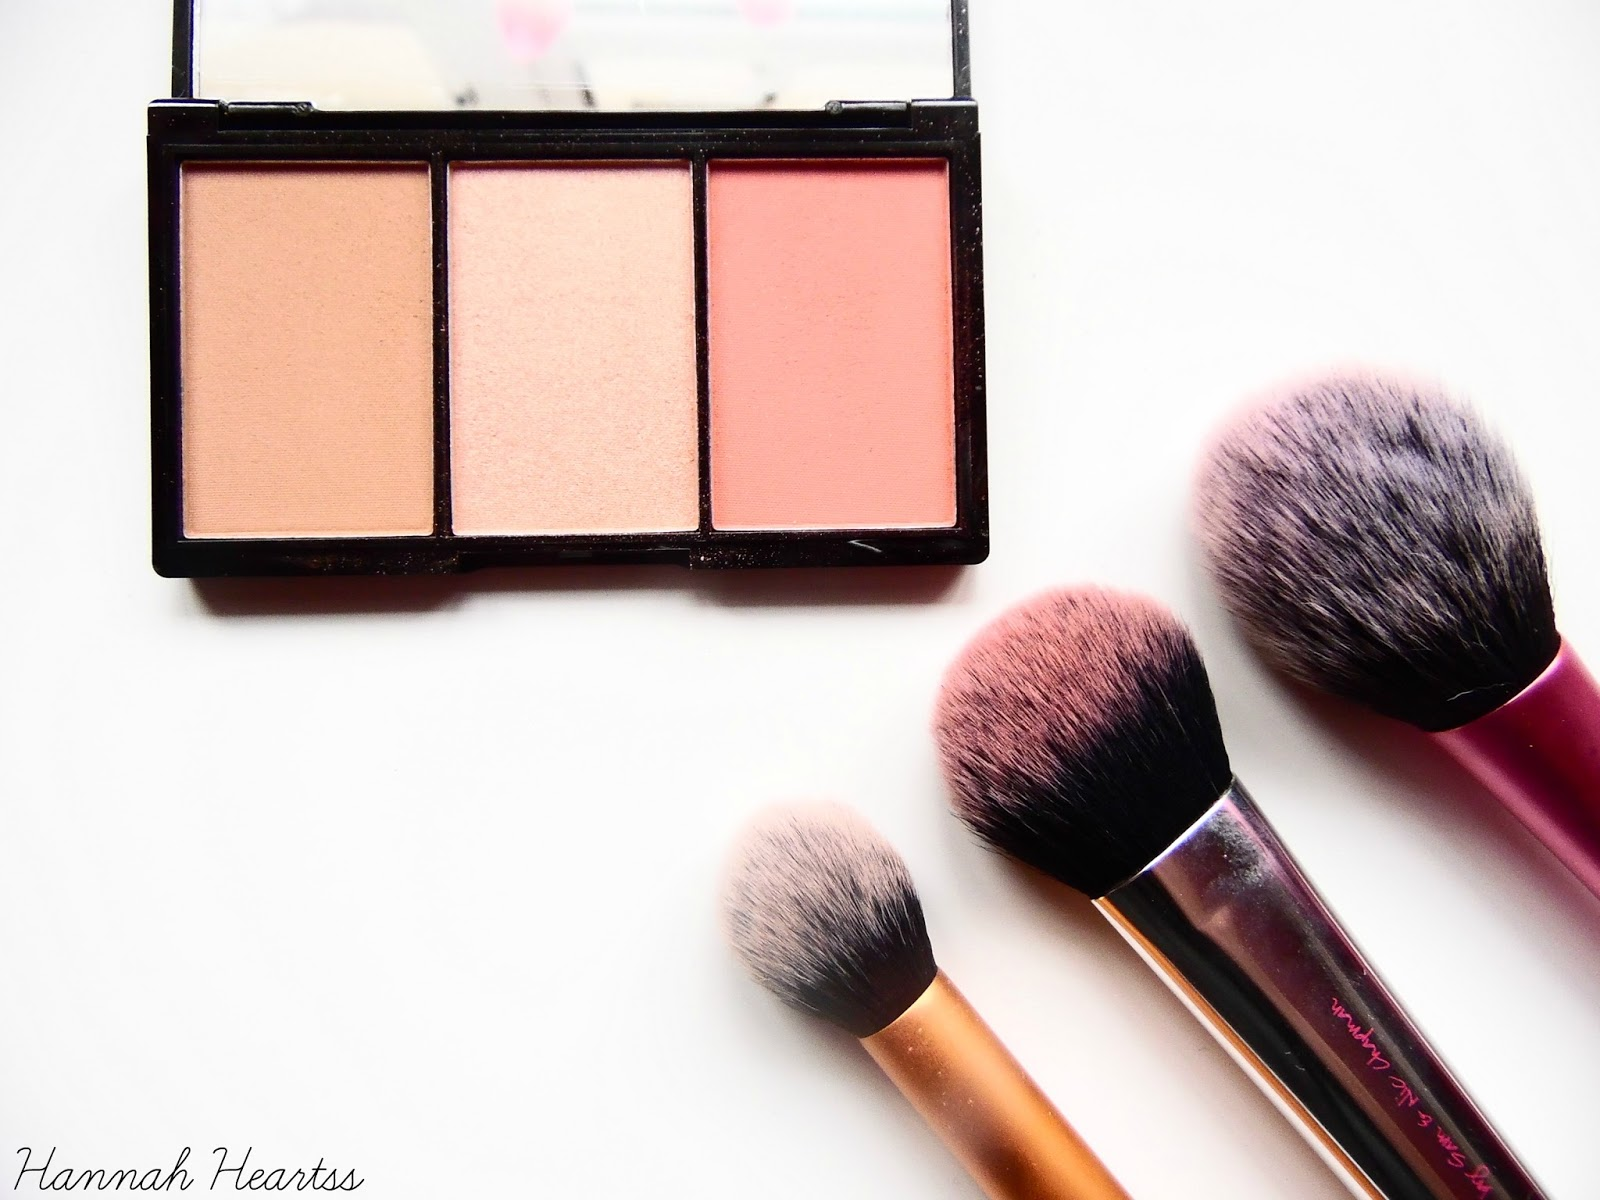 Makeup Revolution Iconic Blush, Bronze and Brighten Palette In Rave